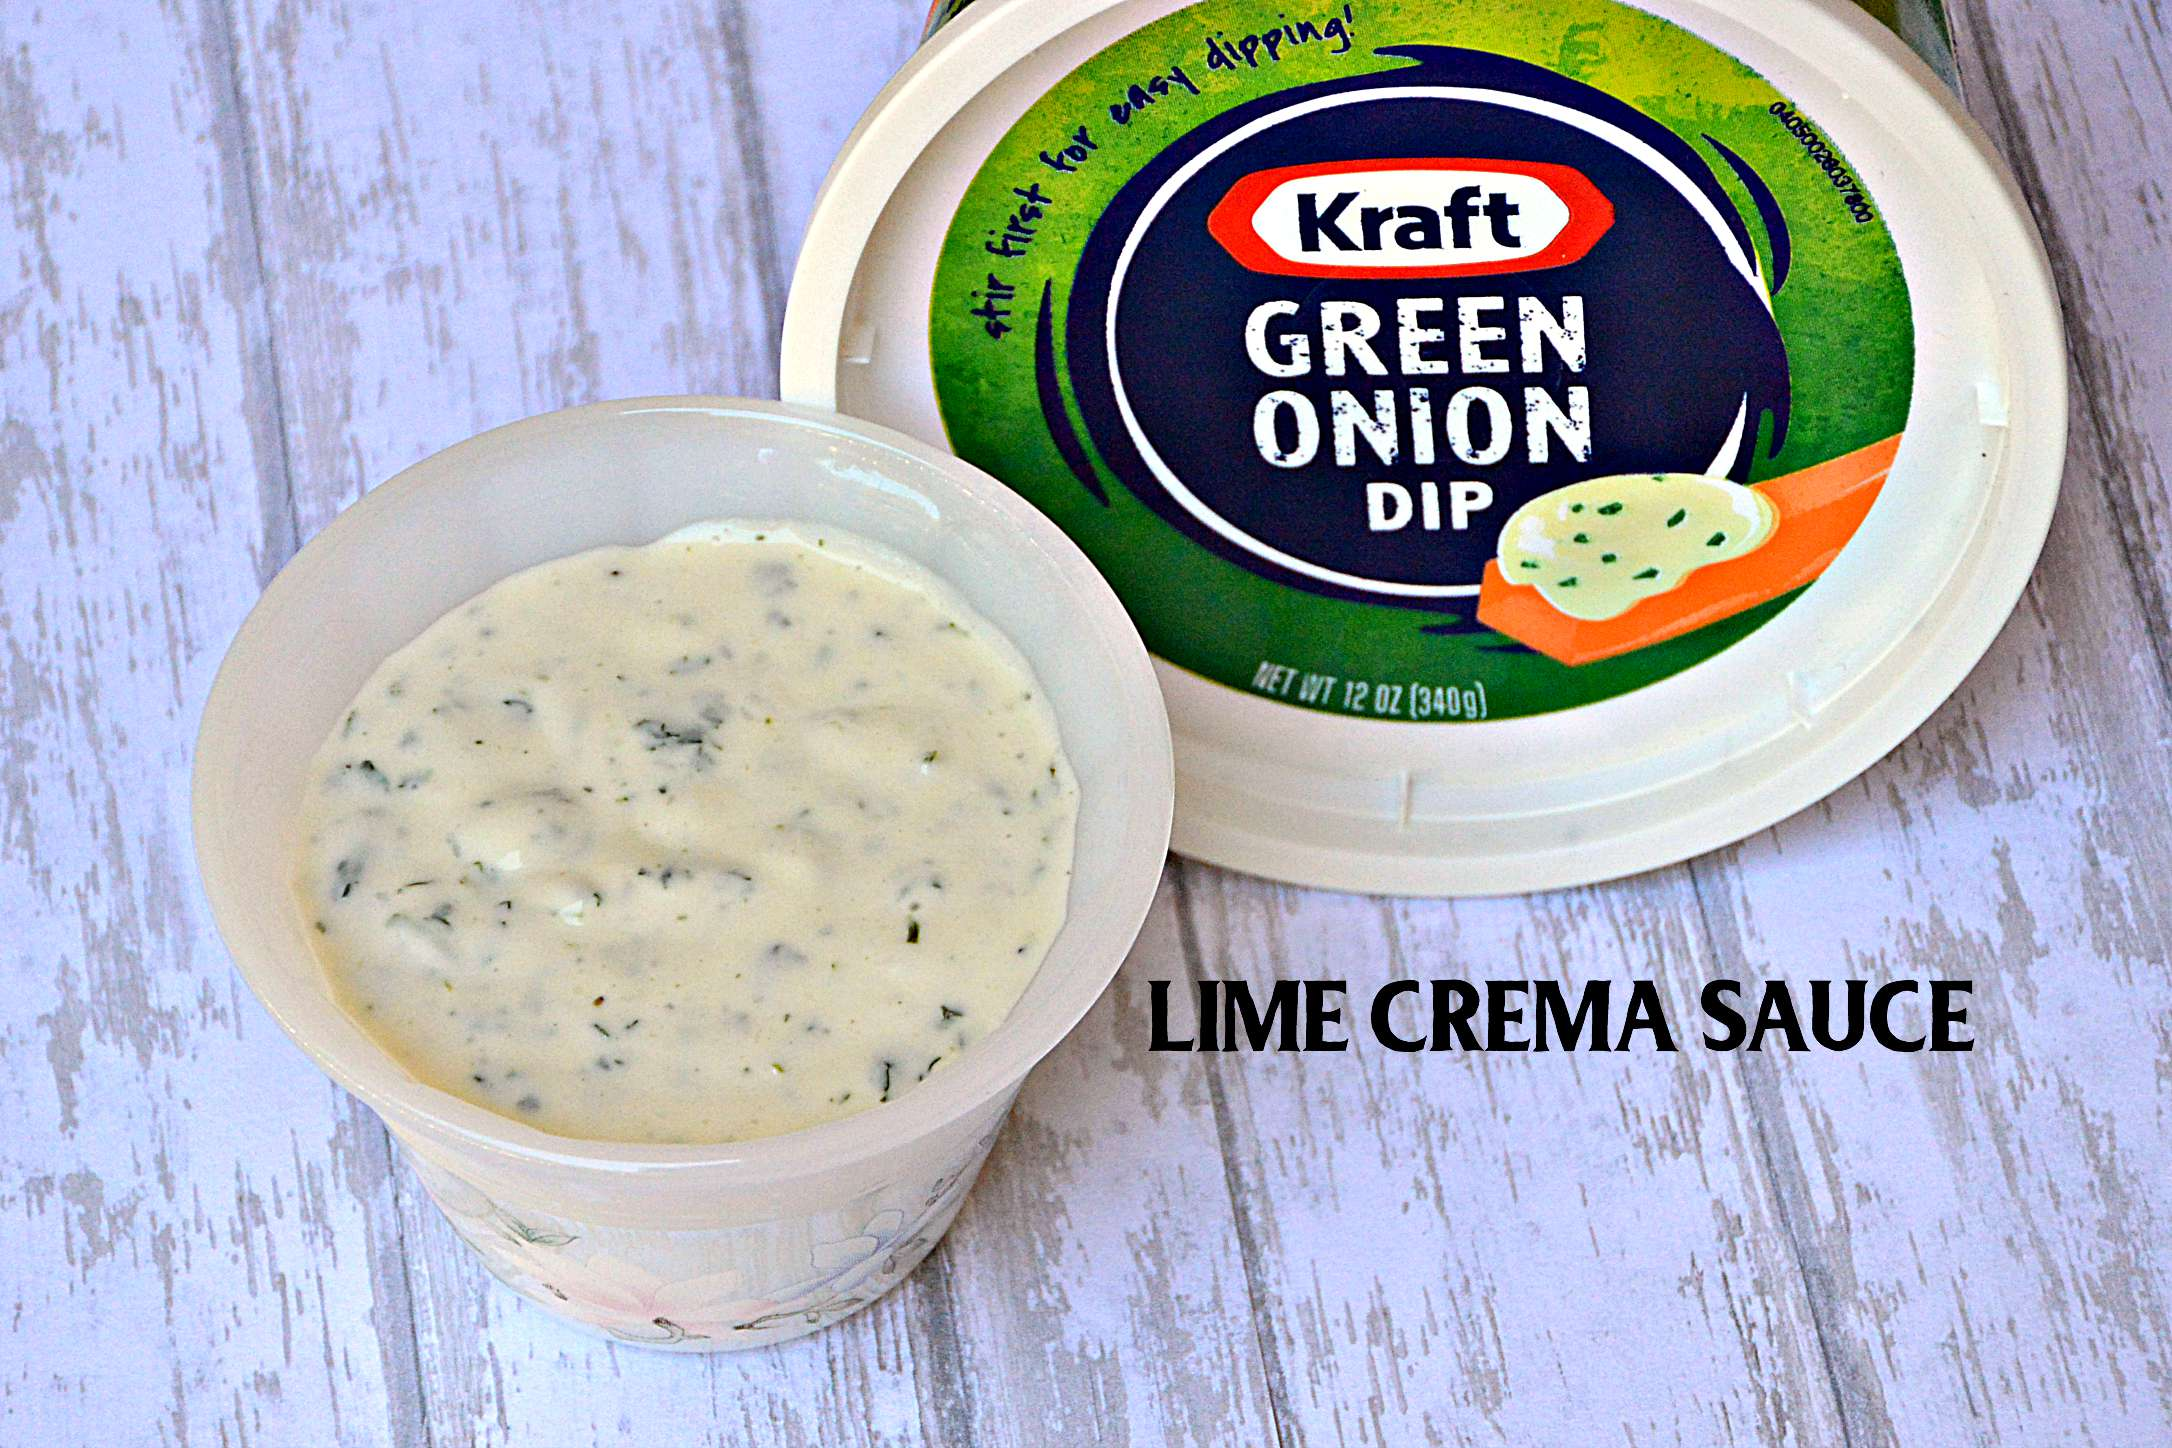 Lime Crema Sauce made with Kraft Green Onion Dip